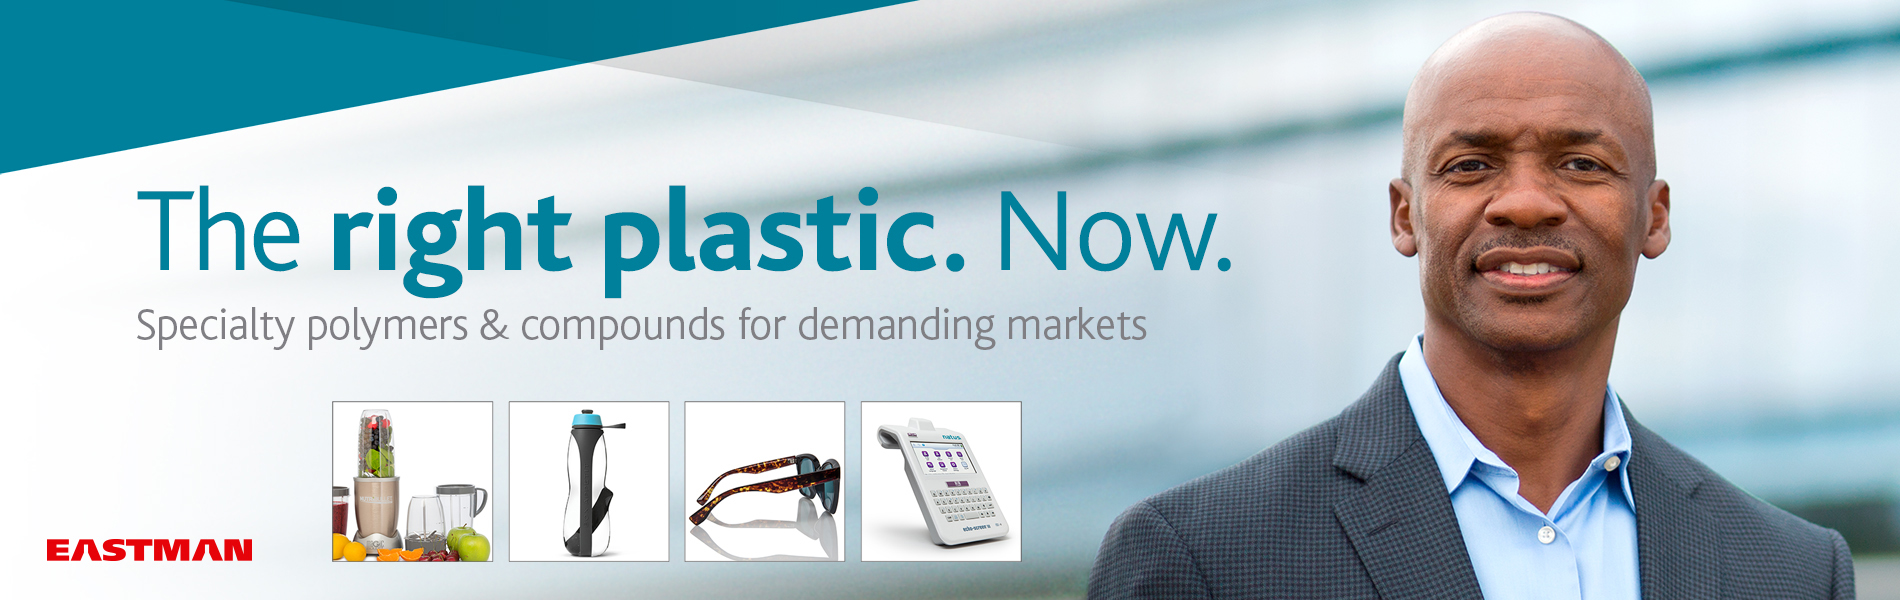 "A banner graphic that says, ""The right plastic. Now. Specialty polymers and compounds for demanding markets."""